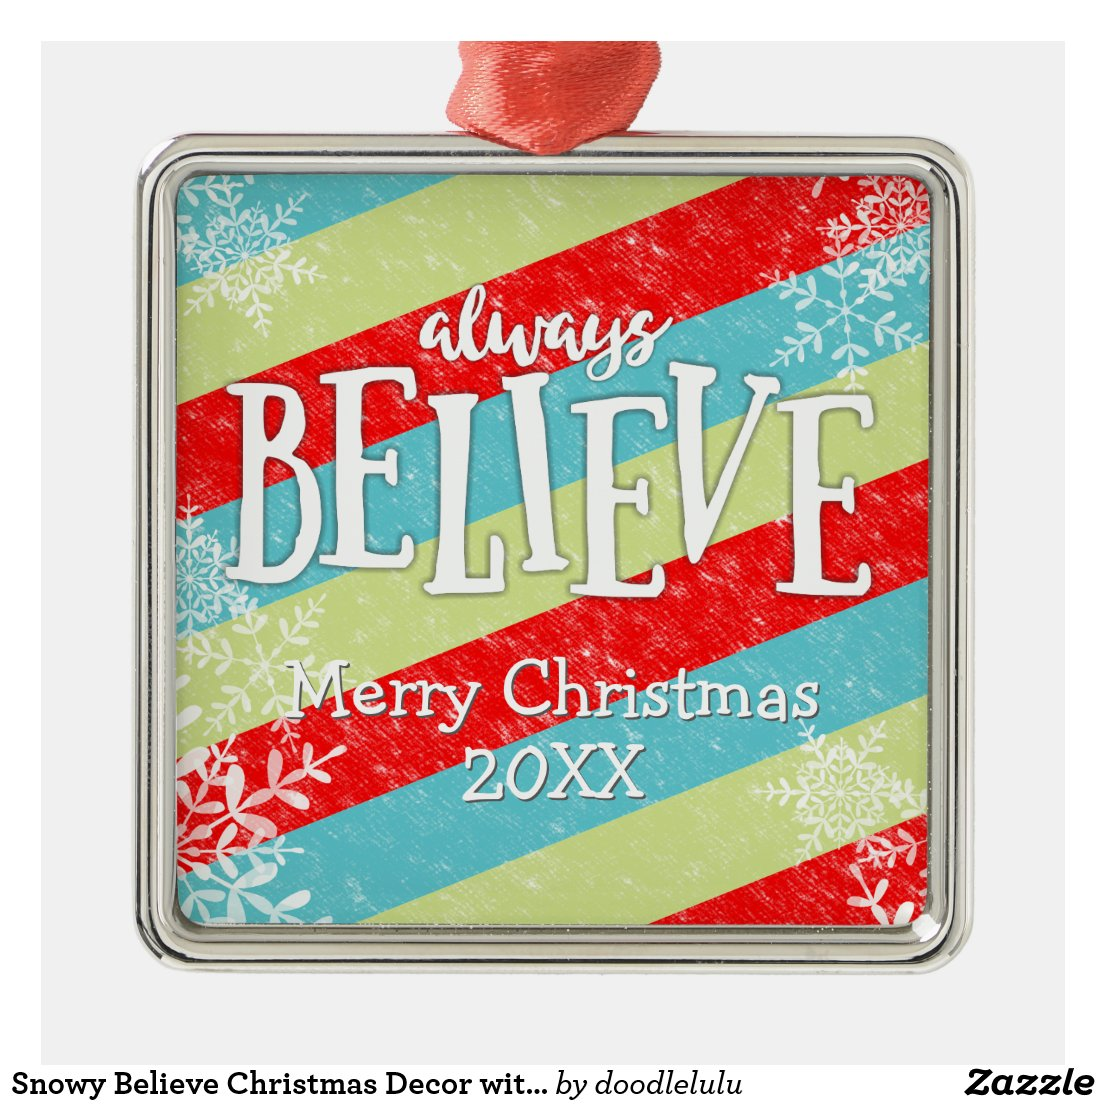 Snowy Believe Christmas Decor with Snowflakes Metal Ornament